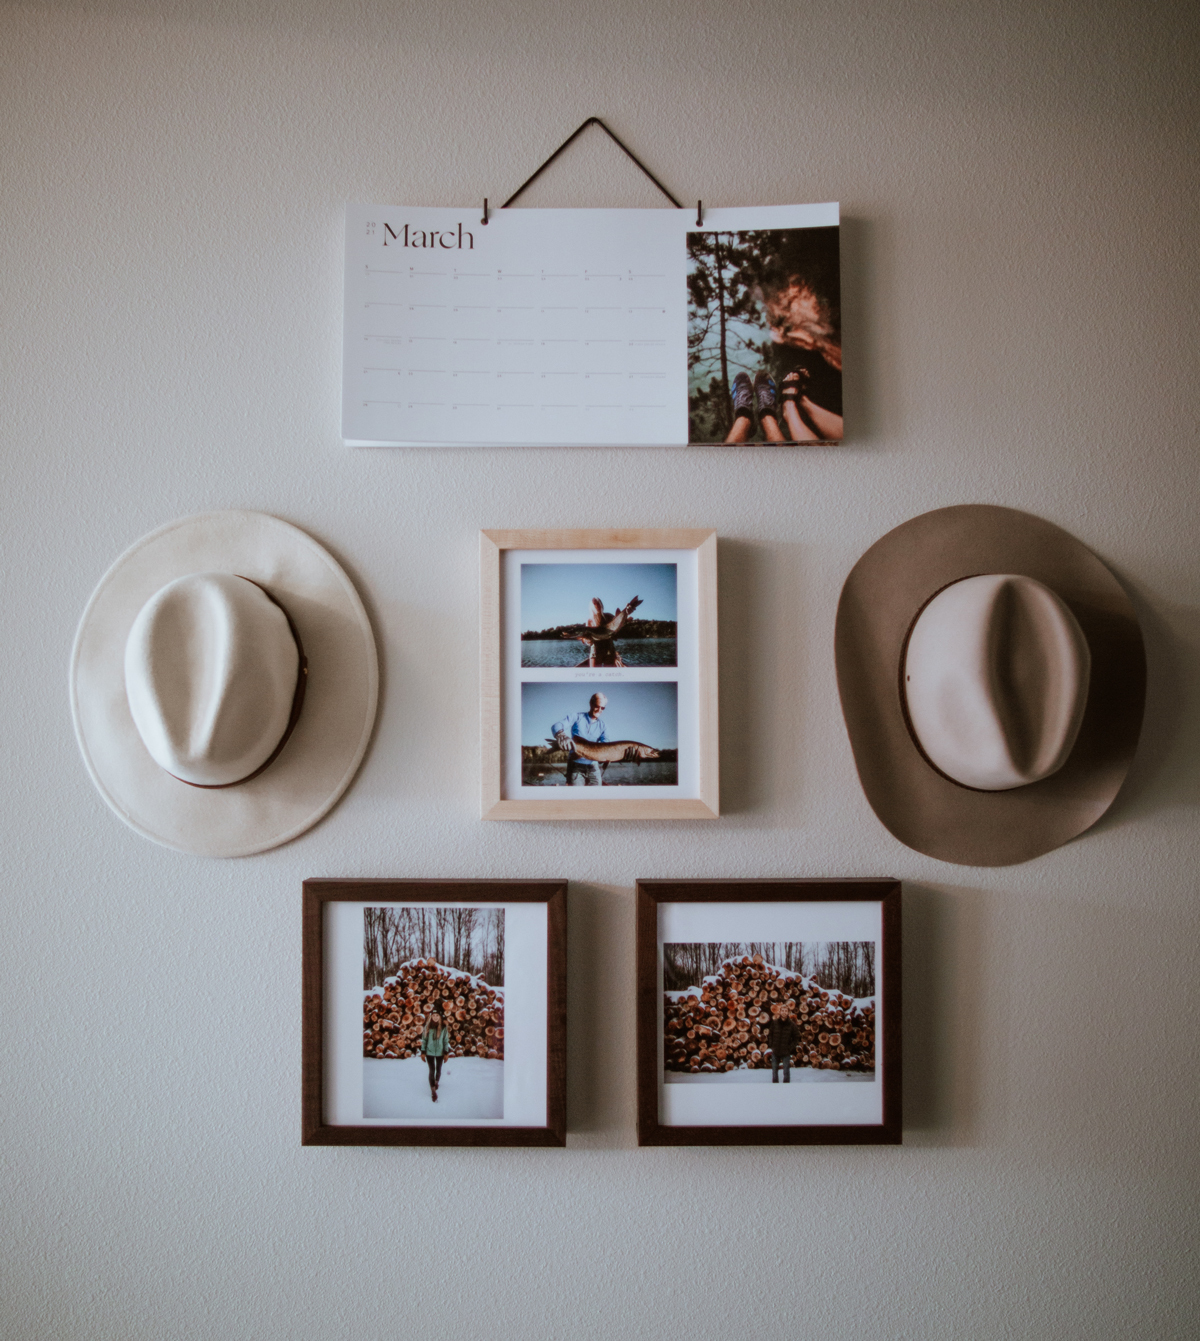 Combination of hats hung on wall next to Artifact Uprising Wall Calendar and Frames